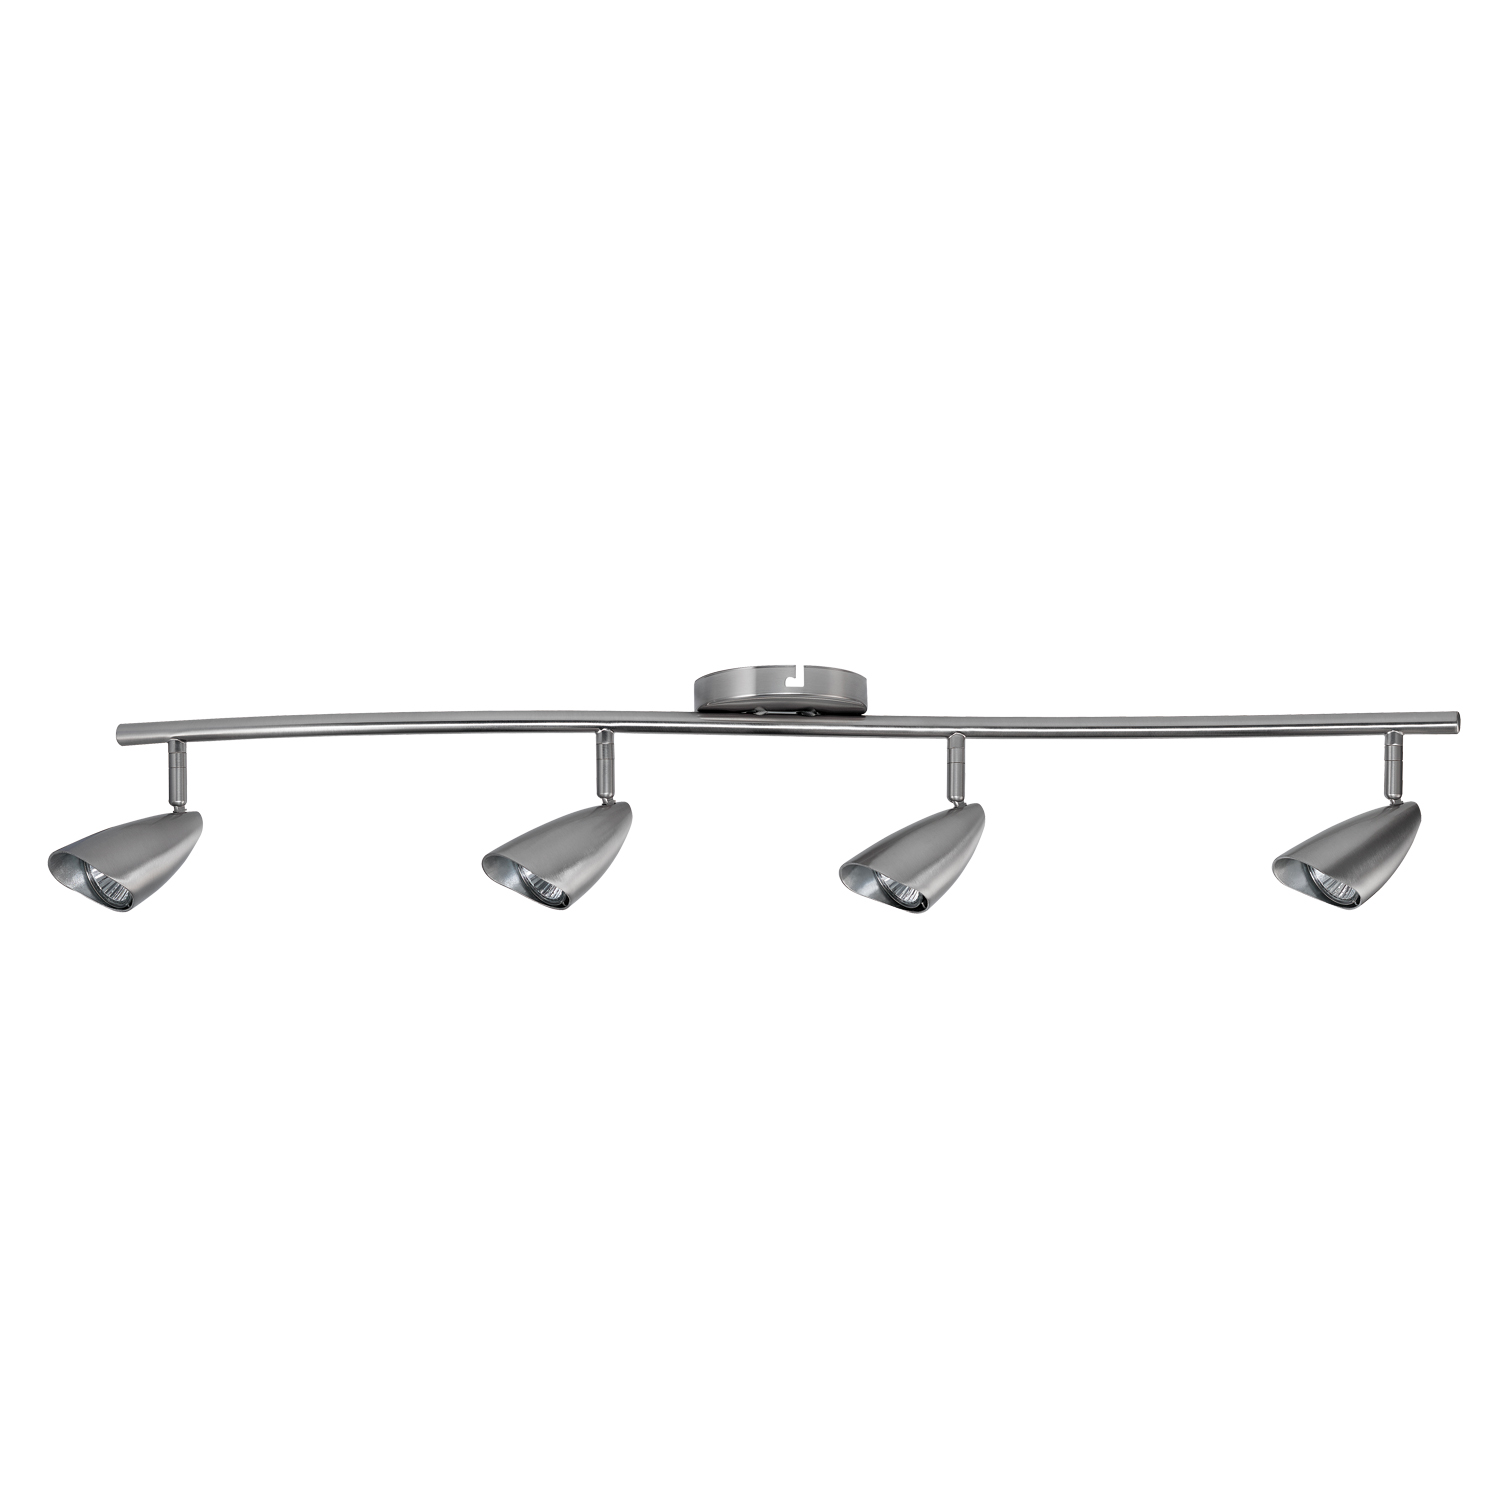 Globe Electric 50 Watt Grayson 4-Light Brushed Steel S-Shape Track Lighting Kit, Bulbs Included by Globe Electric